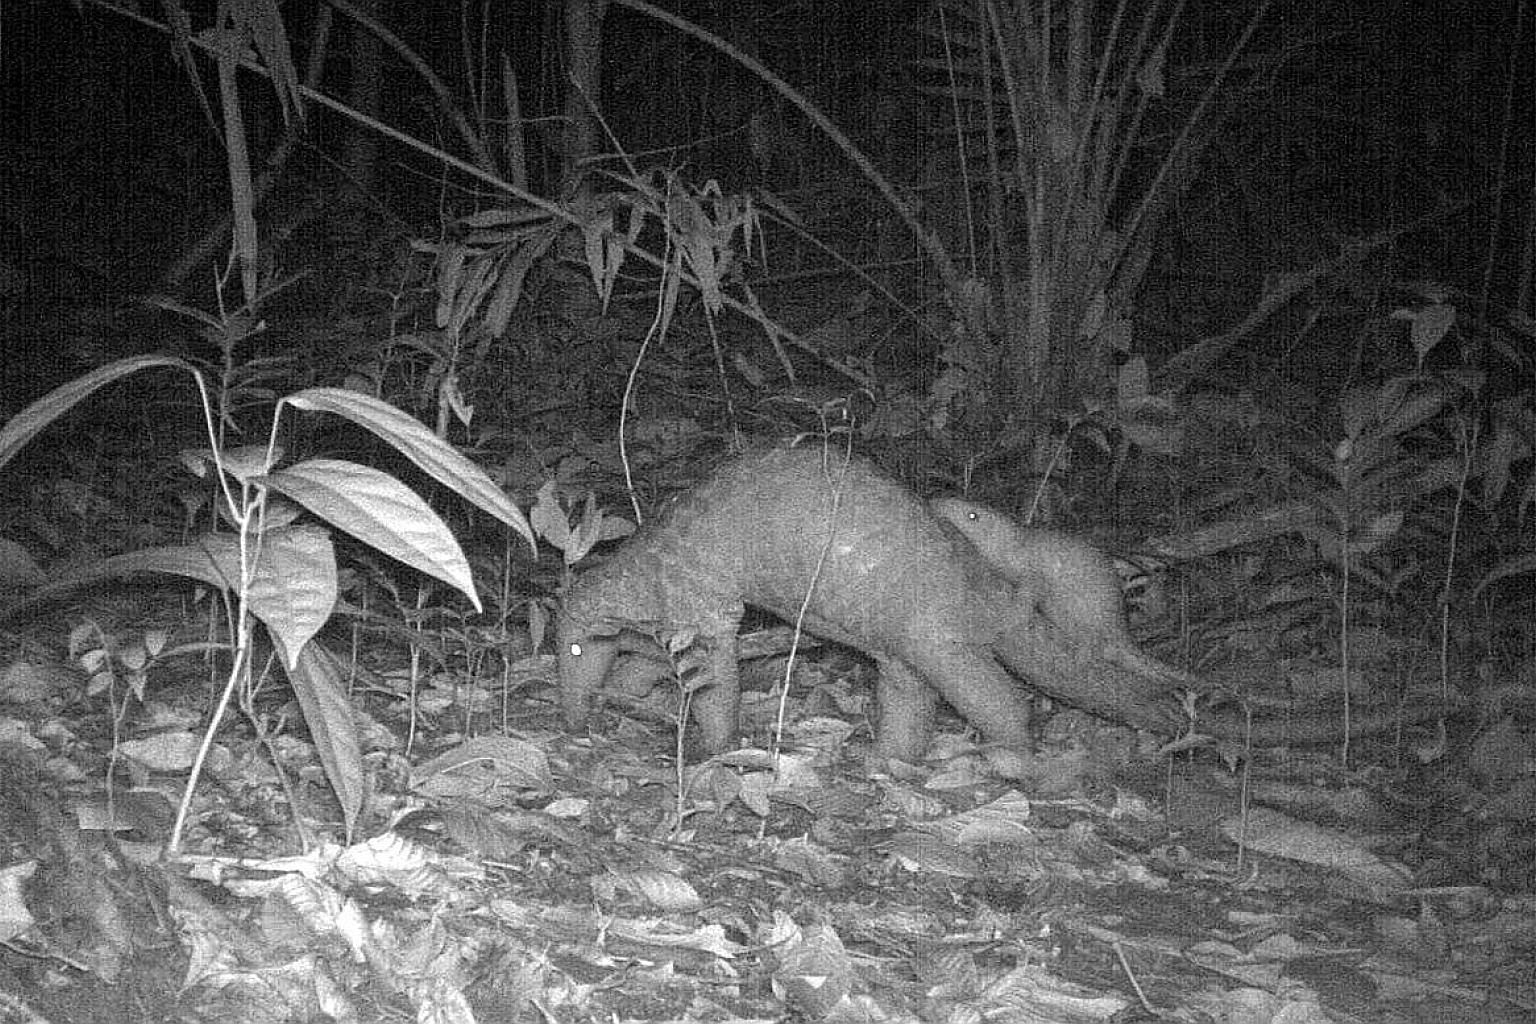 A Sunda pangolin mother and juvenile spotted near Sime Trail in October 2017 after drilling works nearby were completed.